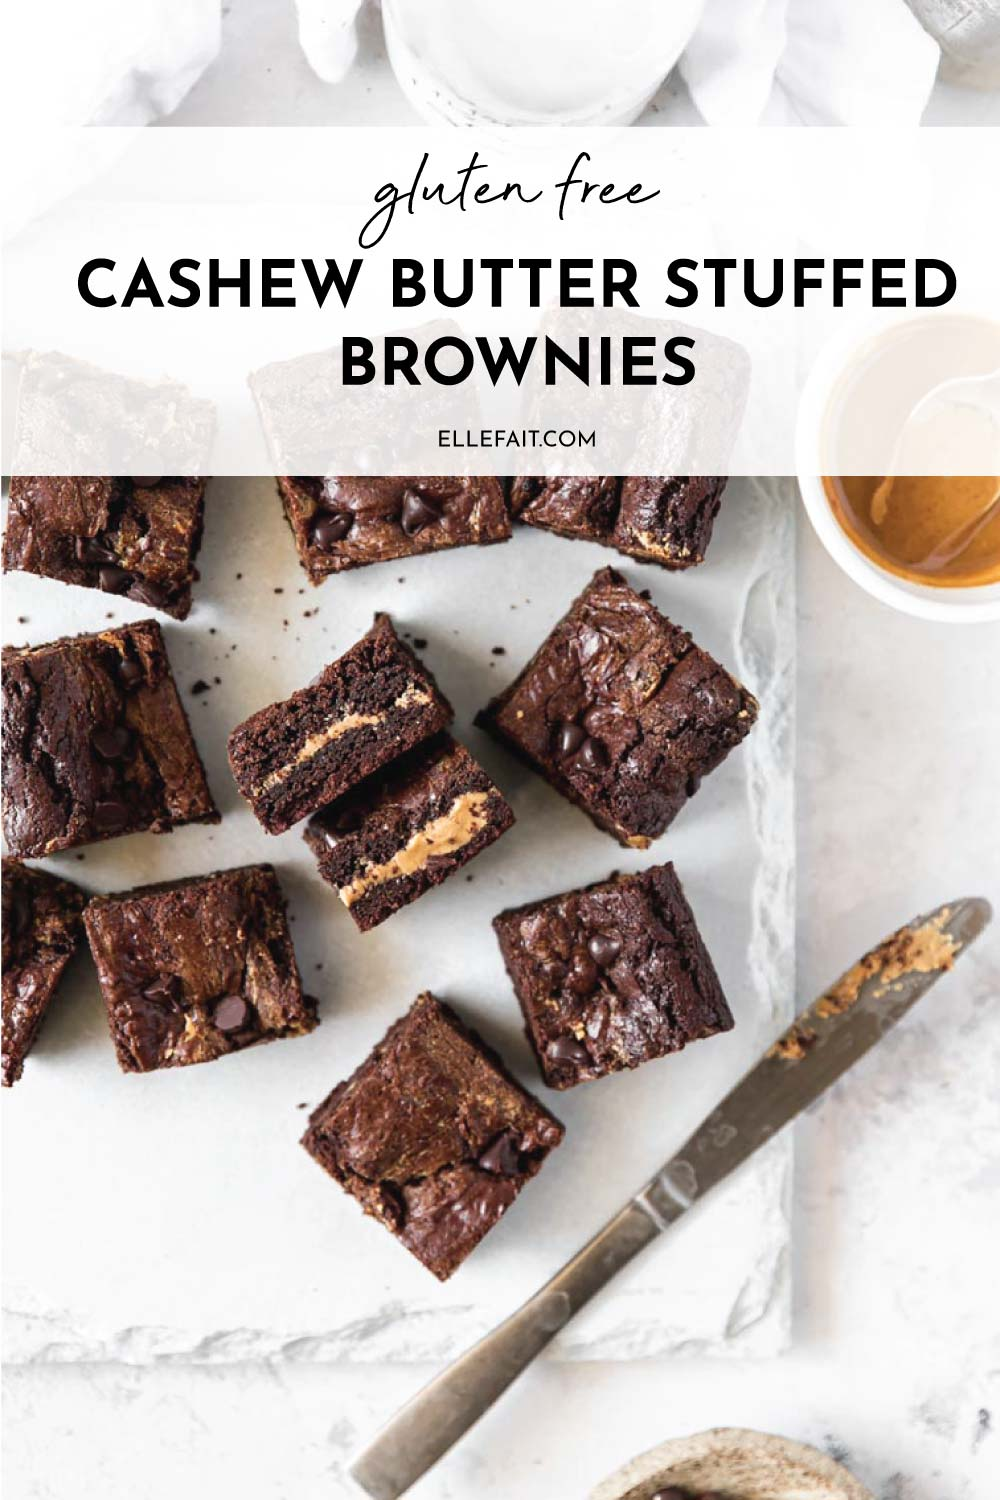 These fudgy, decadent Cashew Butter Stuffed Brownies are made with cassava flour and dairy free chocolate chips. A gluten-free and dairy free dessert you'll want to make on repeat!